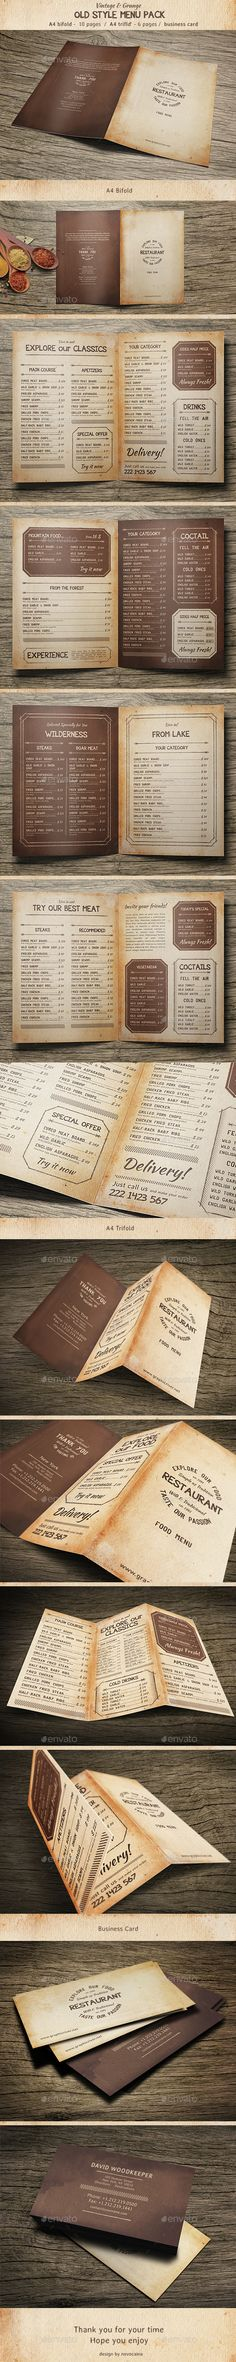 Old Style Menu Pack Template PSD. Download here: http://graphicriver.net/item/old-style-menu-pack/15419334?ref=ksioks